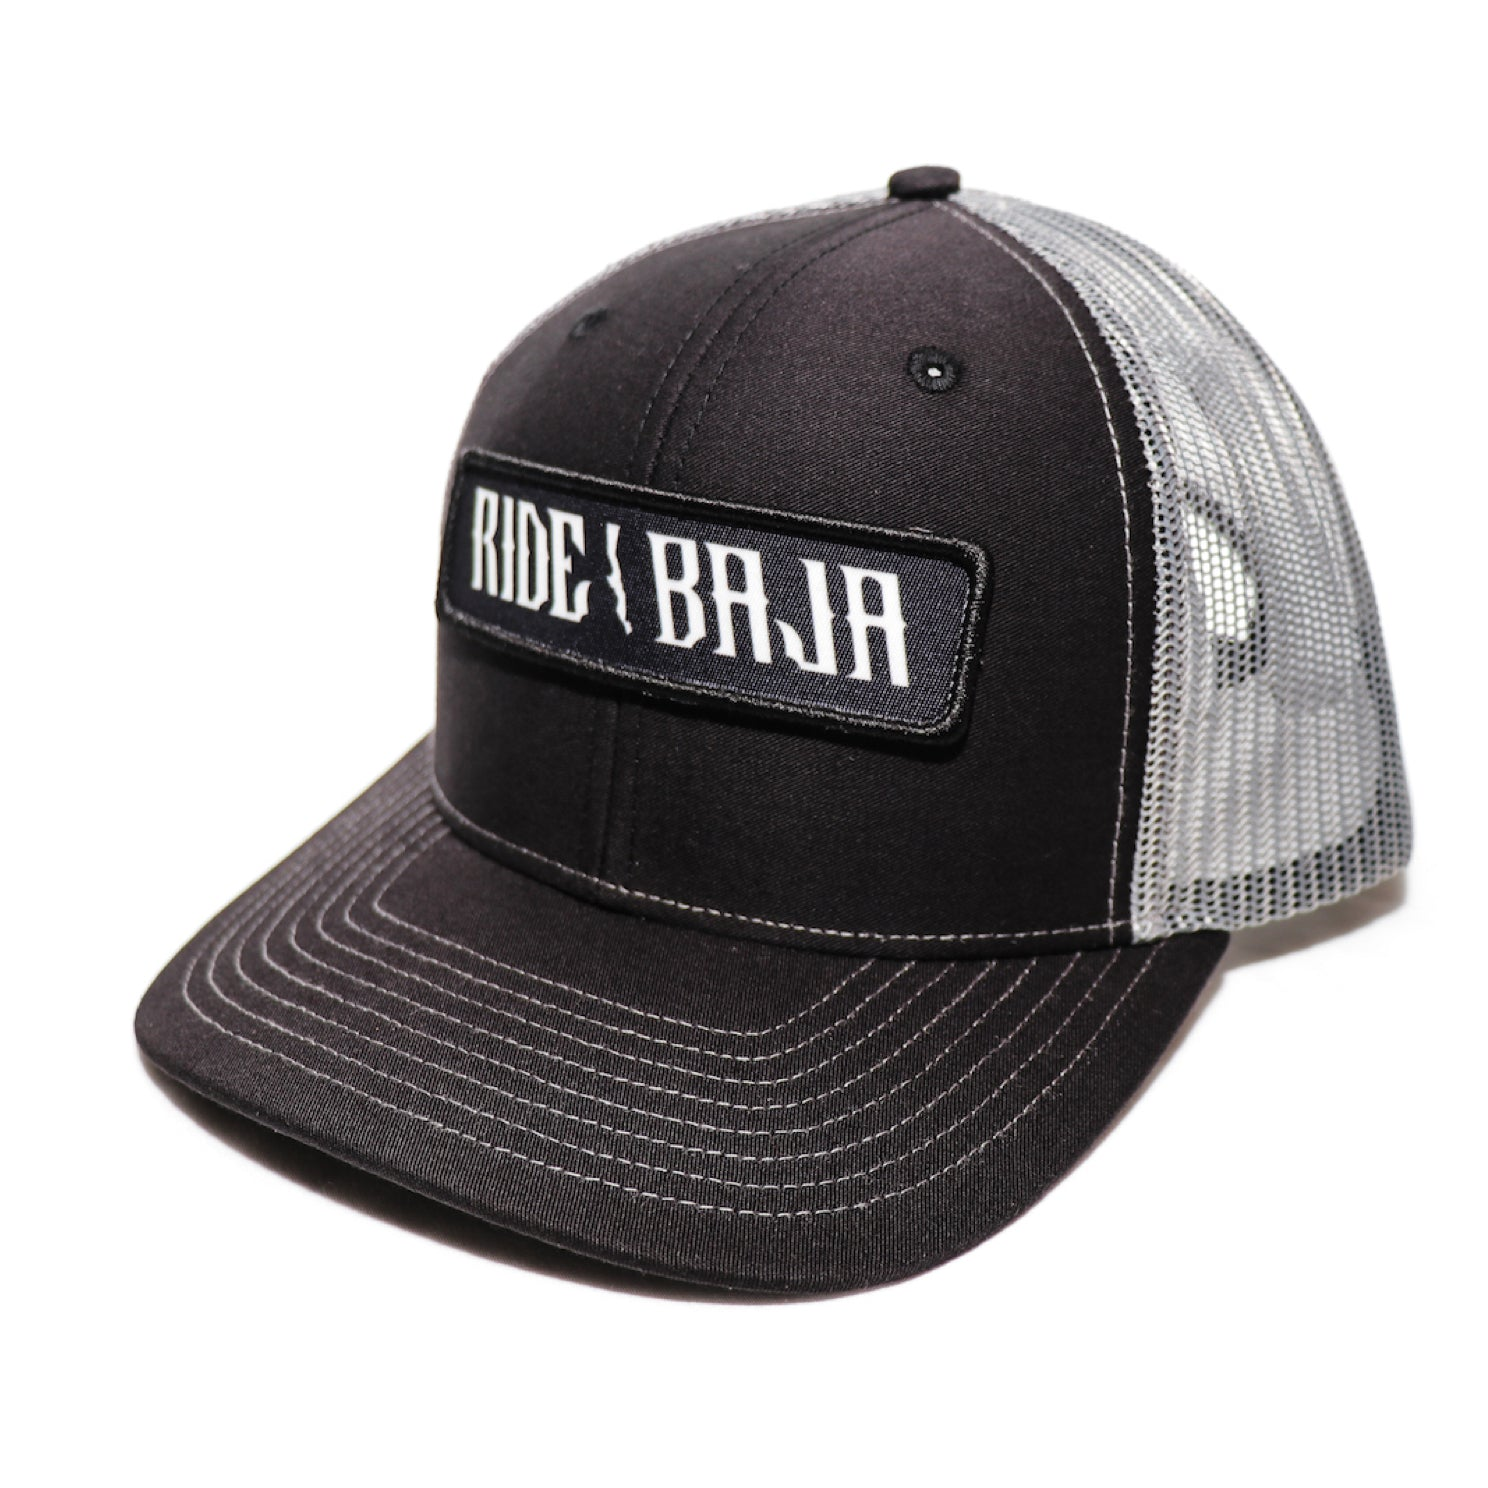 Classic Ride Baja Patch Hat - Black / Silver Mesh